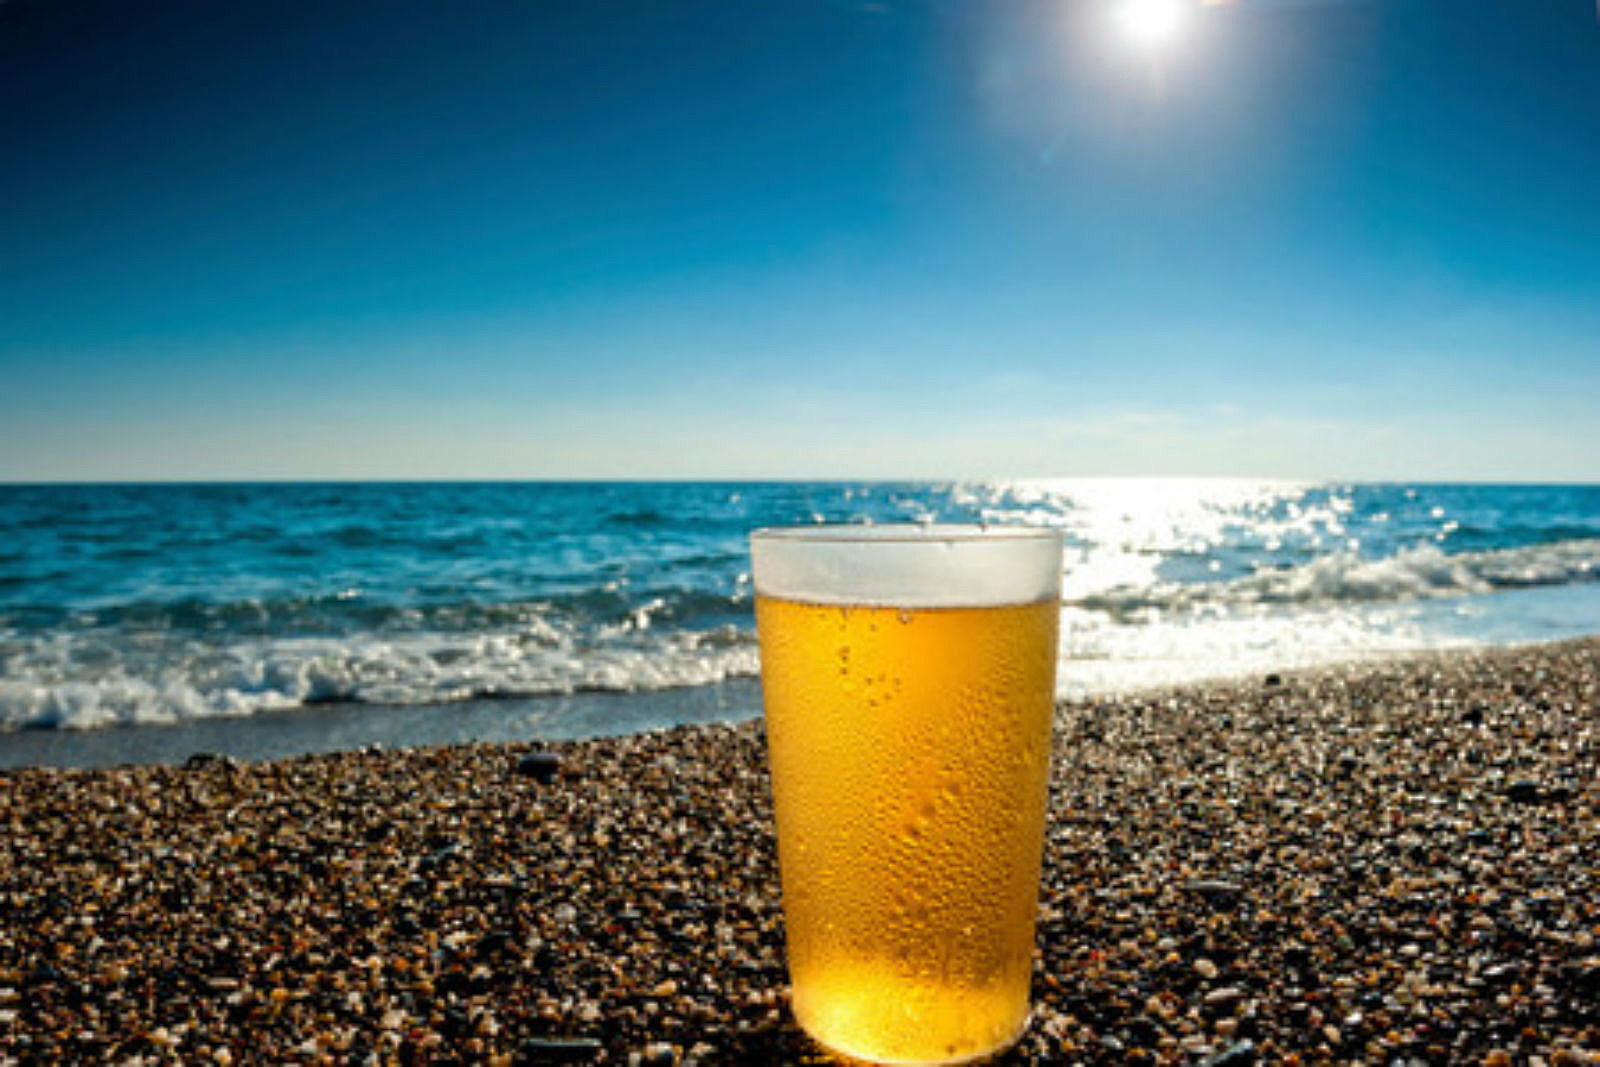 Cheapest places to buy beer